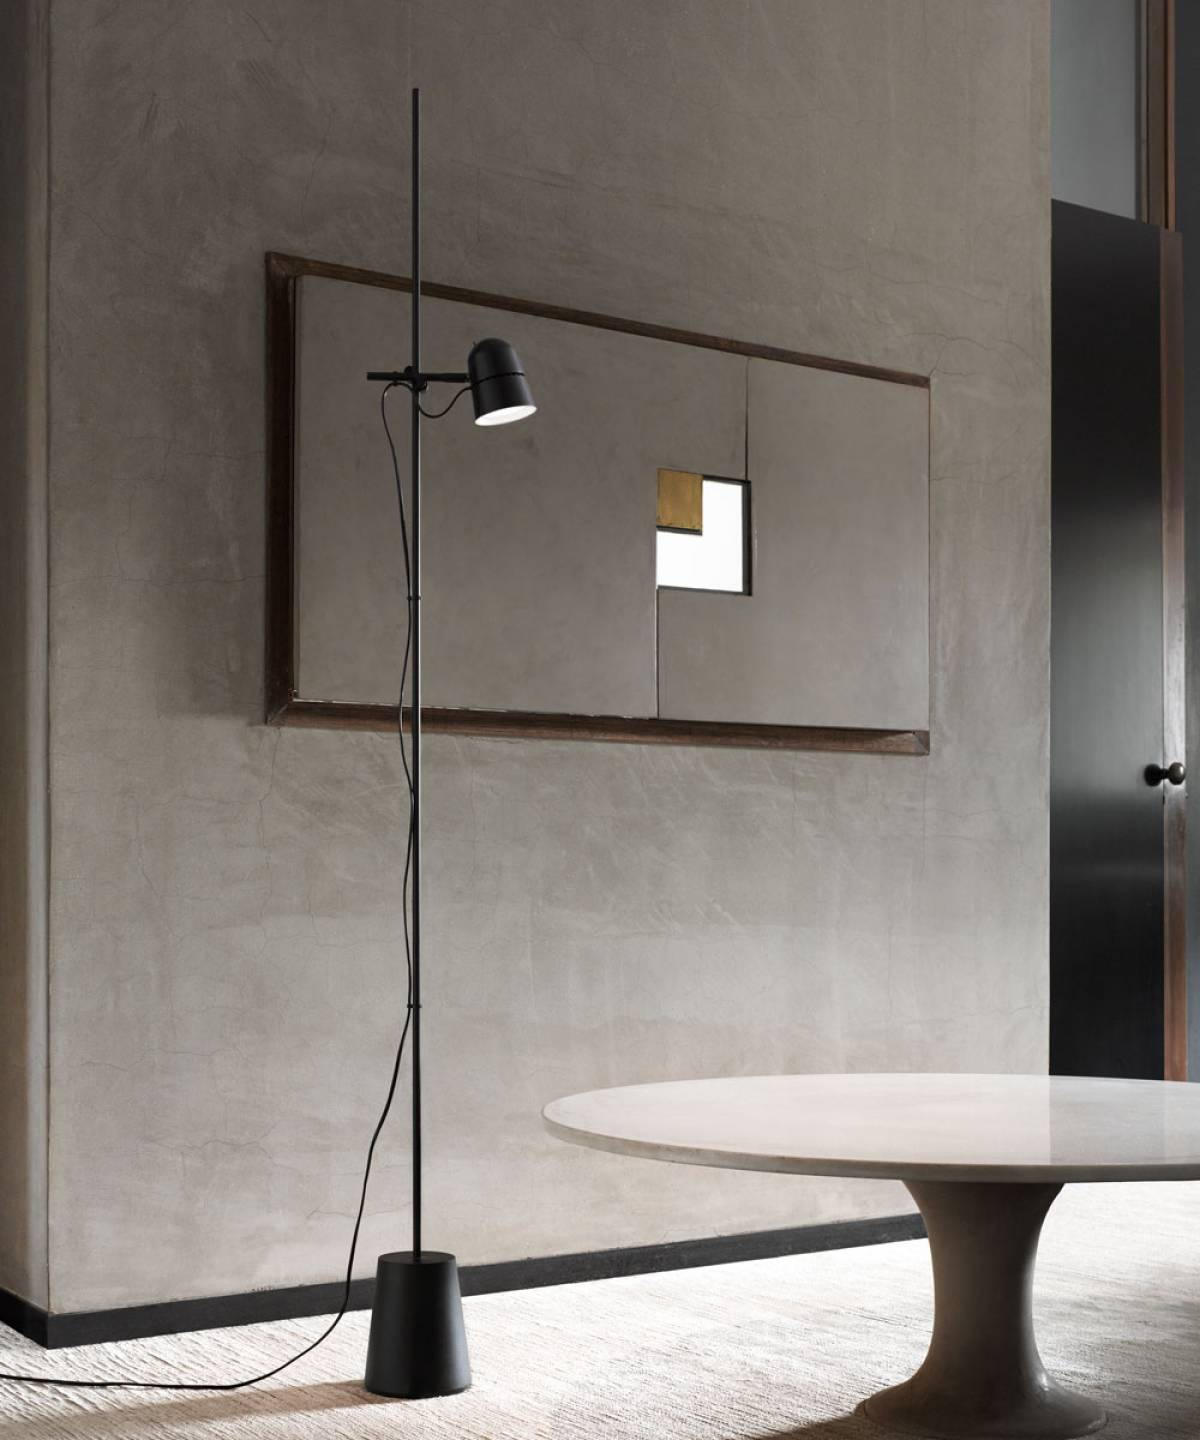 Counterbalance floor lamp Luceplan